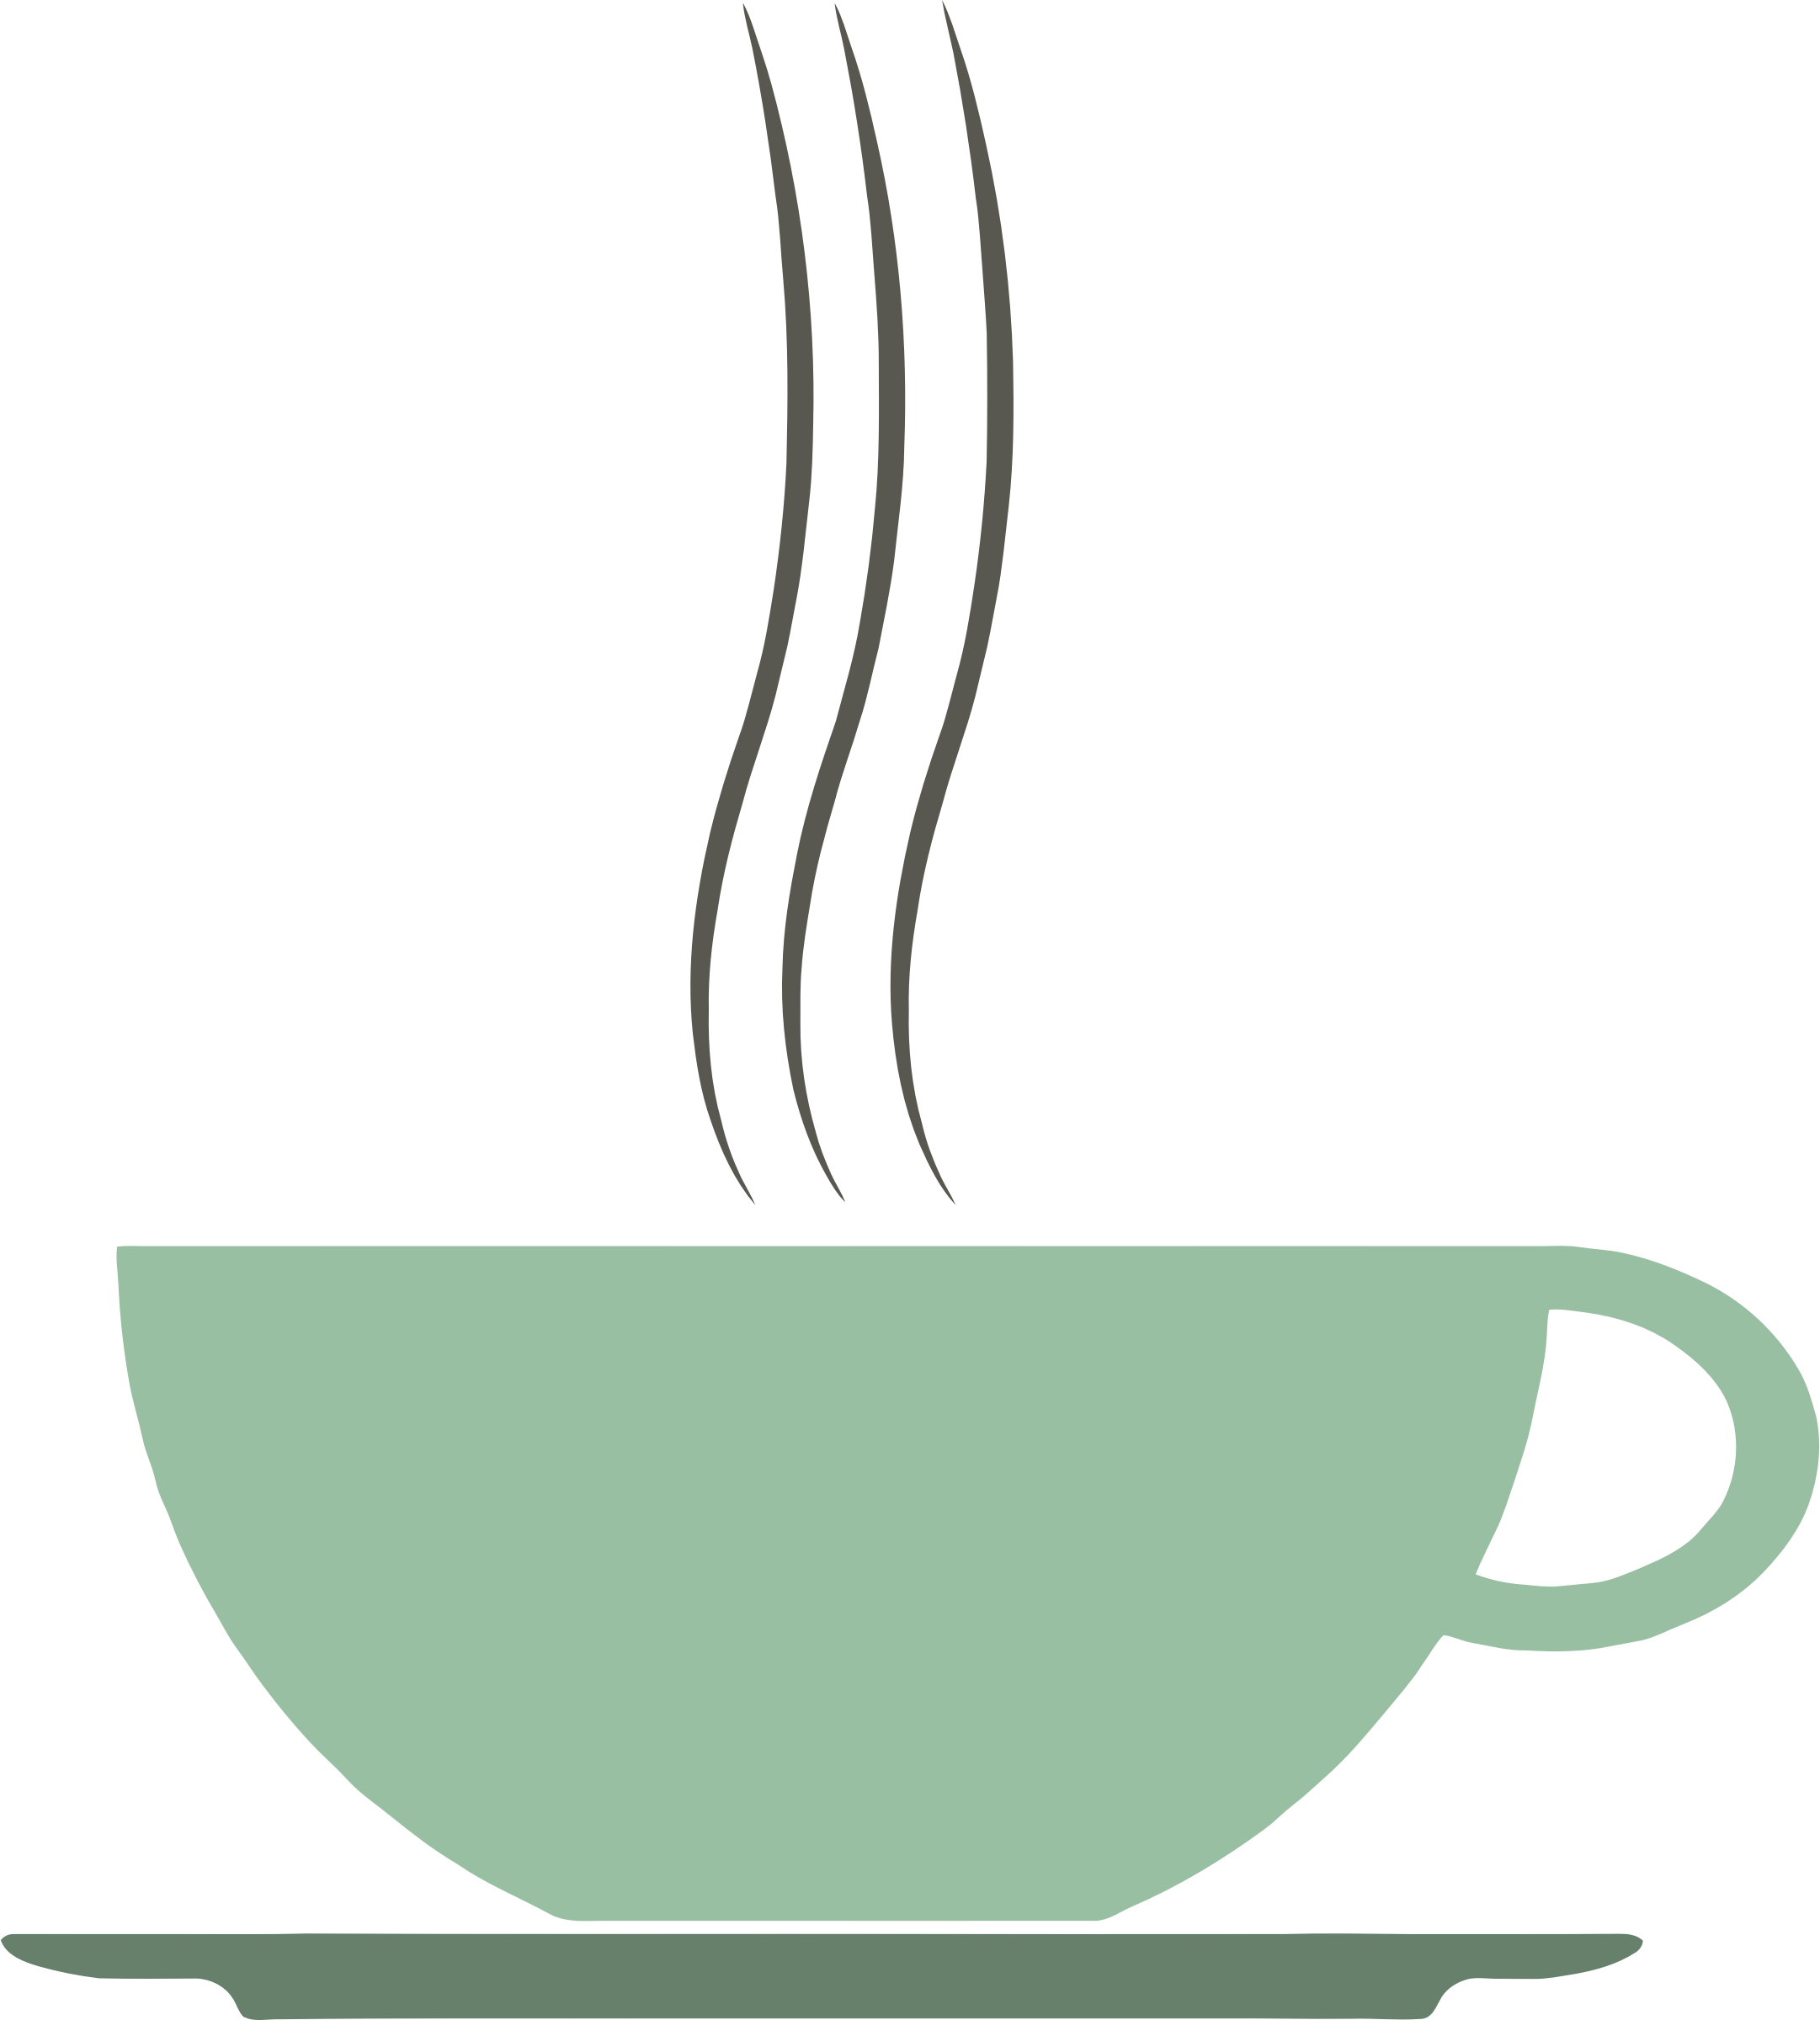 Coffee cup coffee mug clip art free vector for free download about.